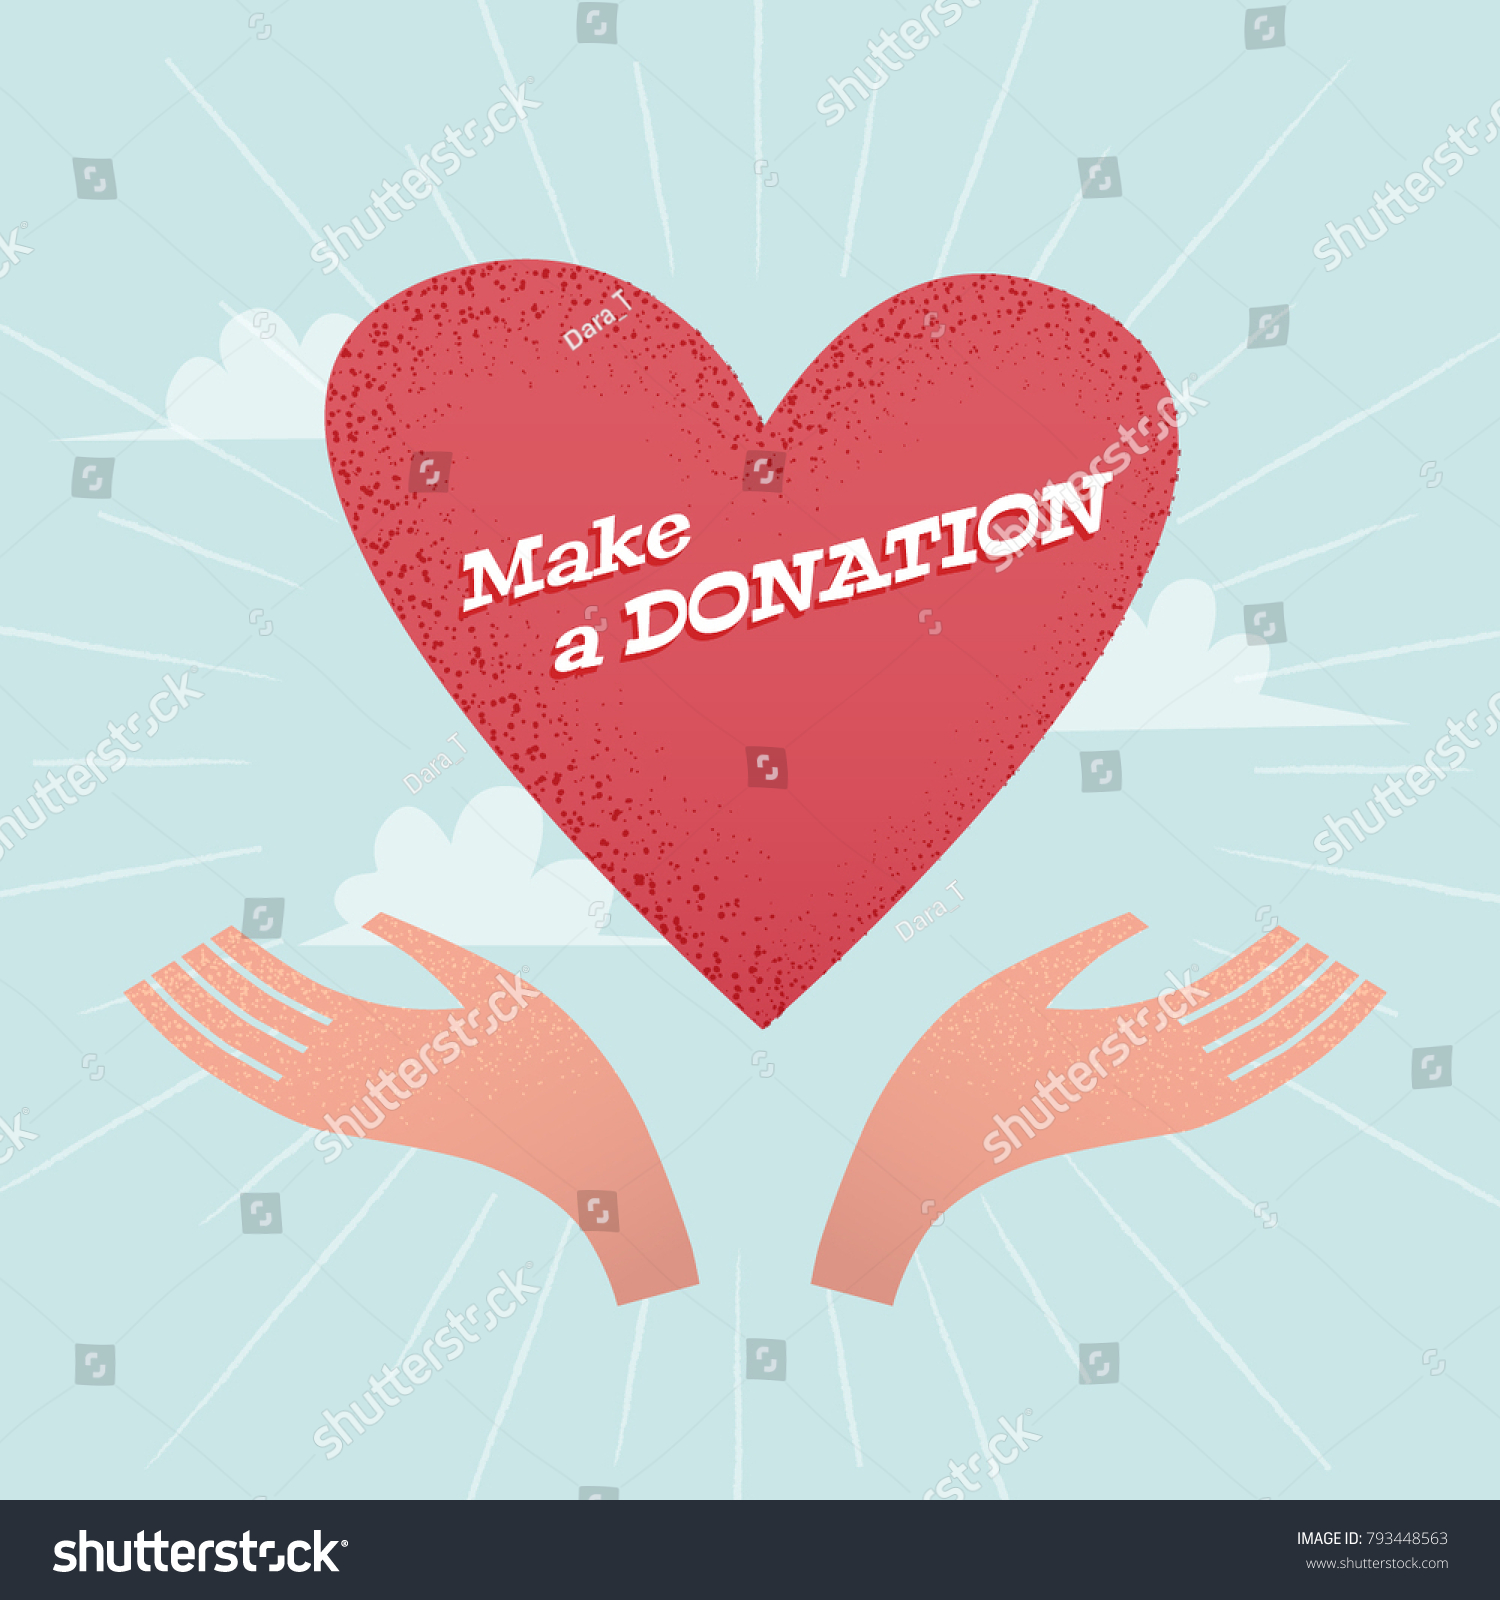 Heart in hand symbol gallery symbol and sign ideas heart hand symbol logo template charity stock vector 793448563 heart in hand symbol logo template for biocorpaavc